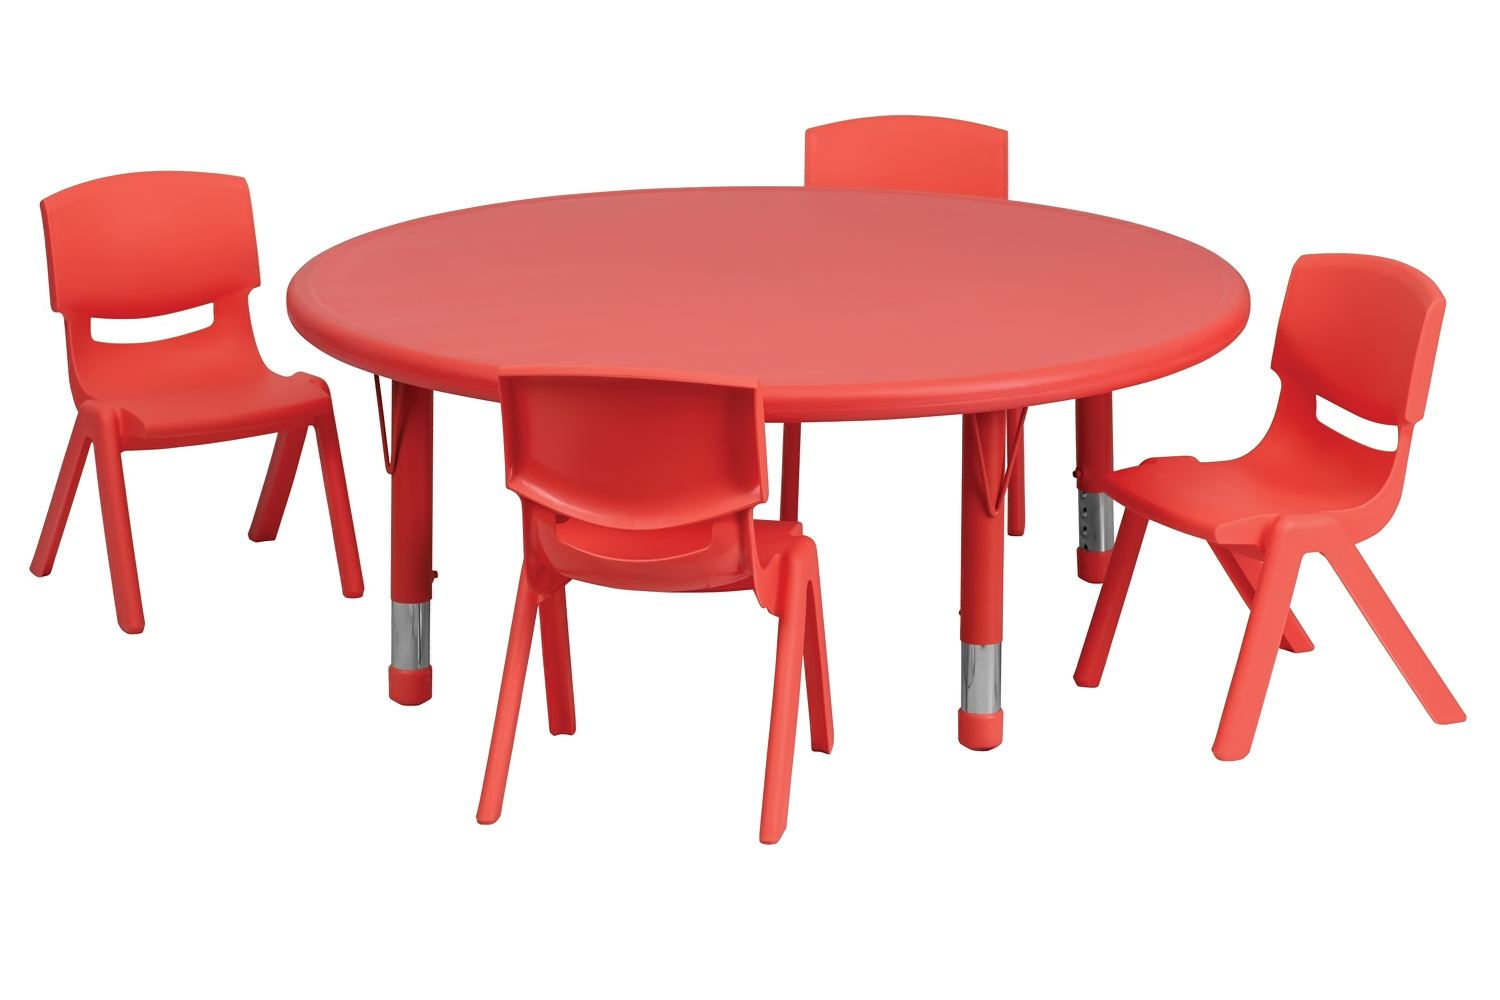 Flash Furniture 45'' Round Adjustable Red Plastic Kids Activity Table Set With 4 School Stack Chairs at Sears.com